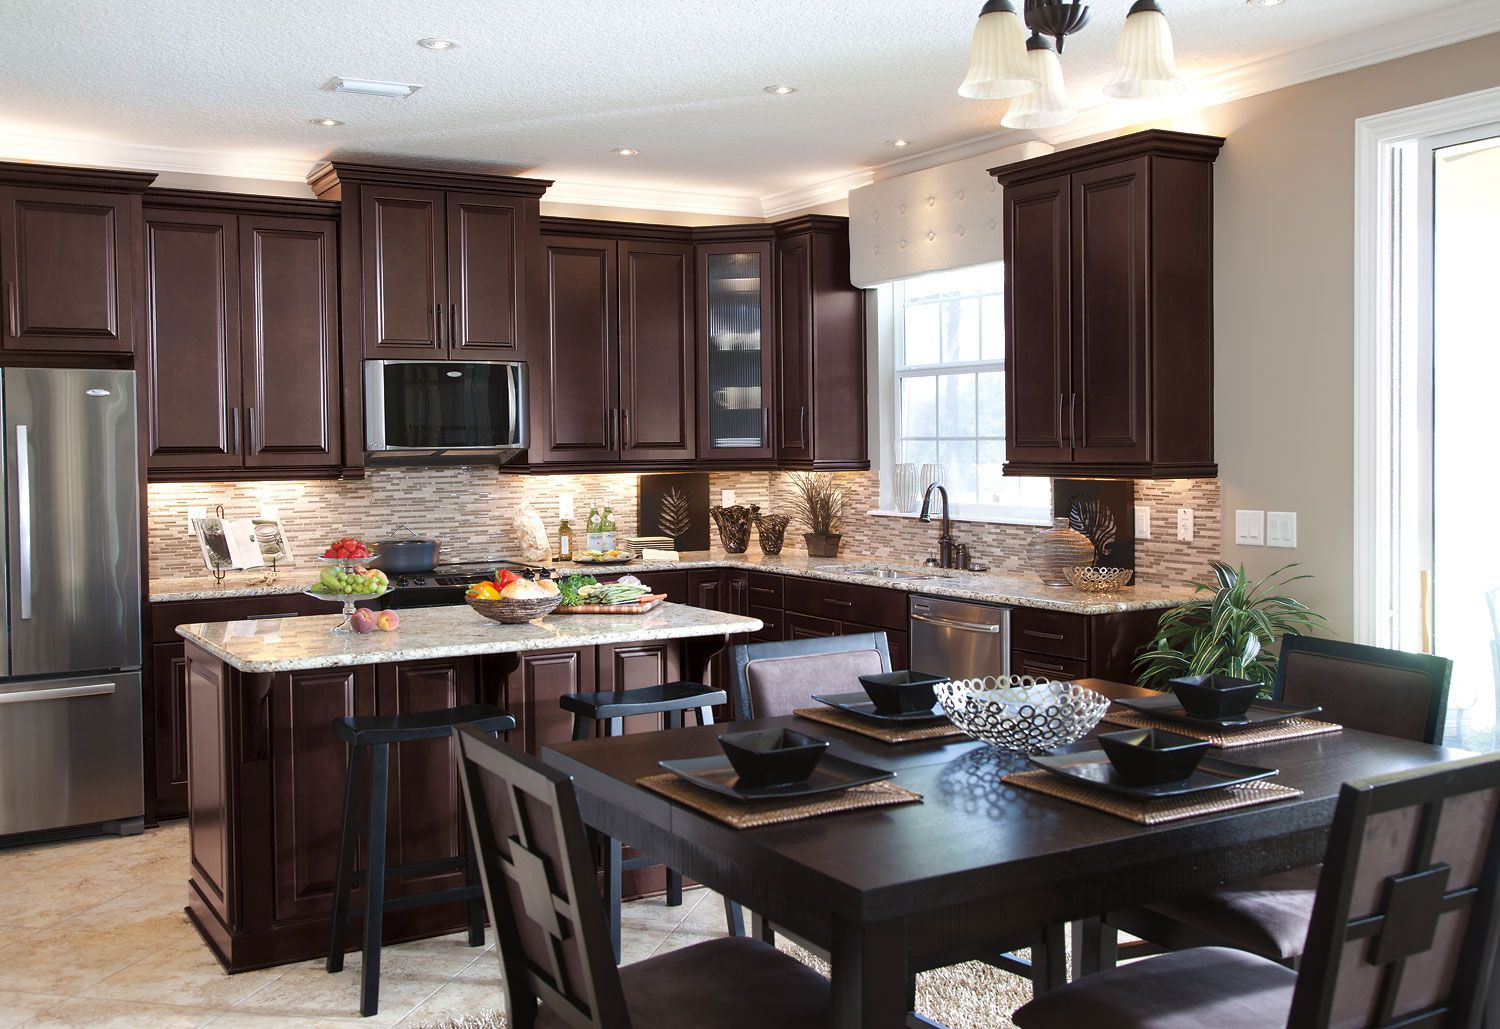 Timberlake Cabinets With Light Rail Lighting And Crown